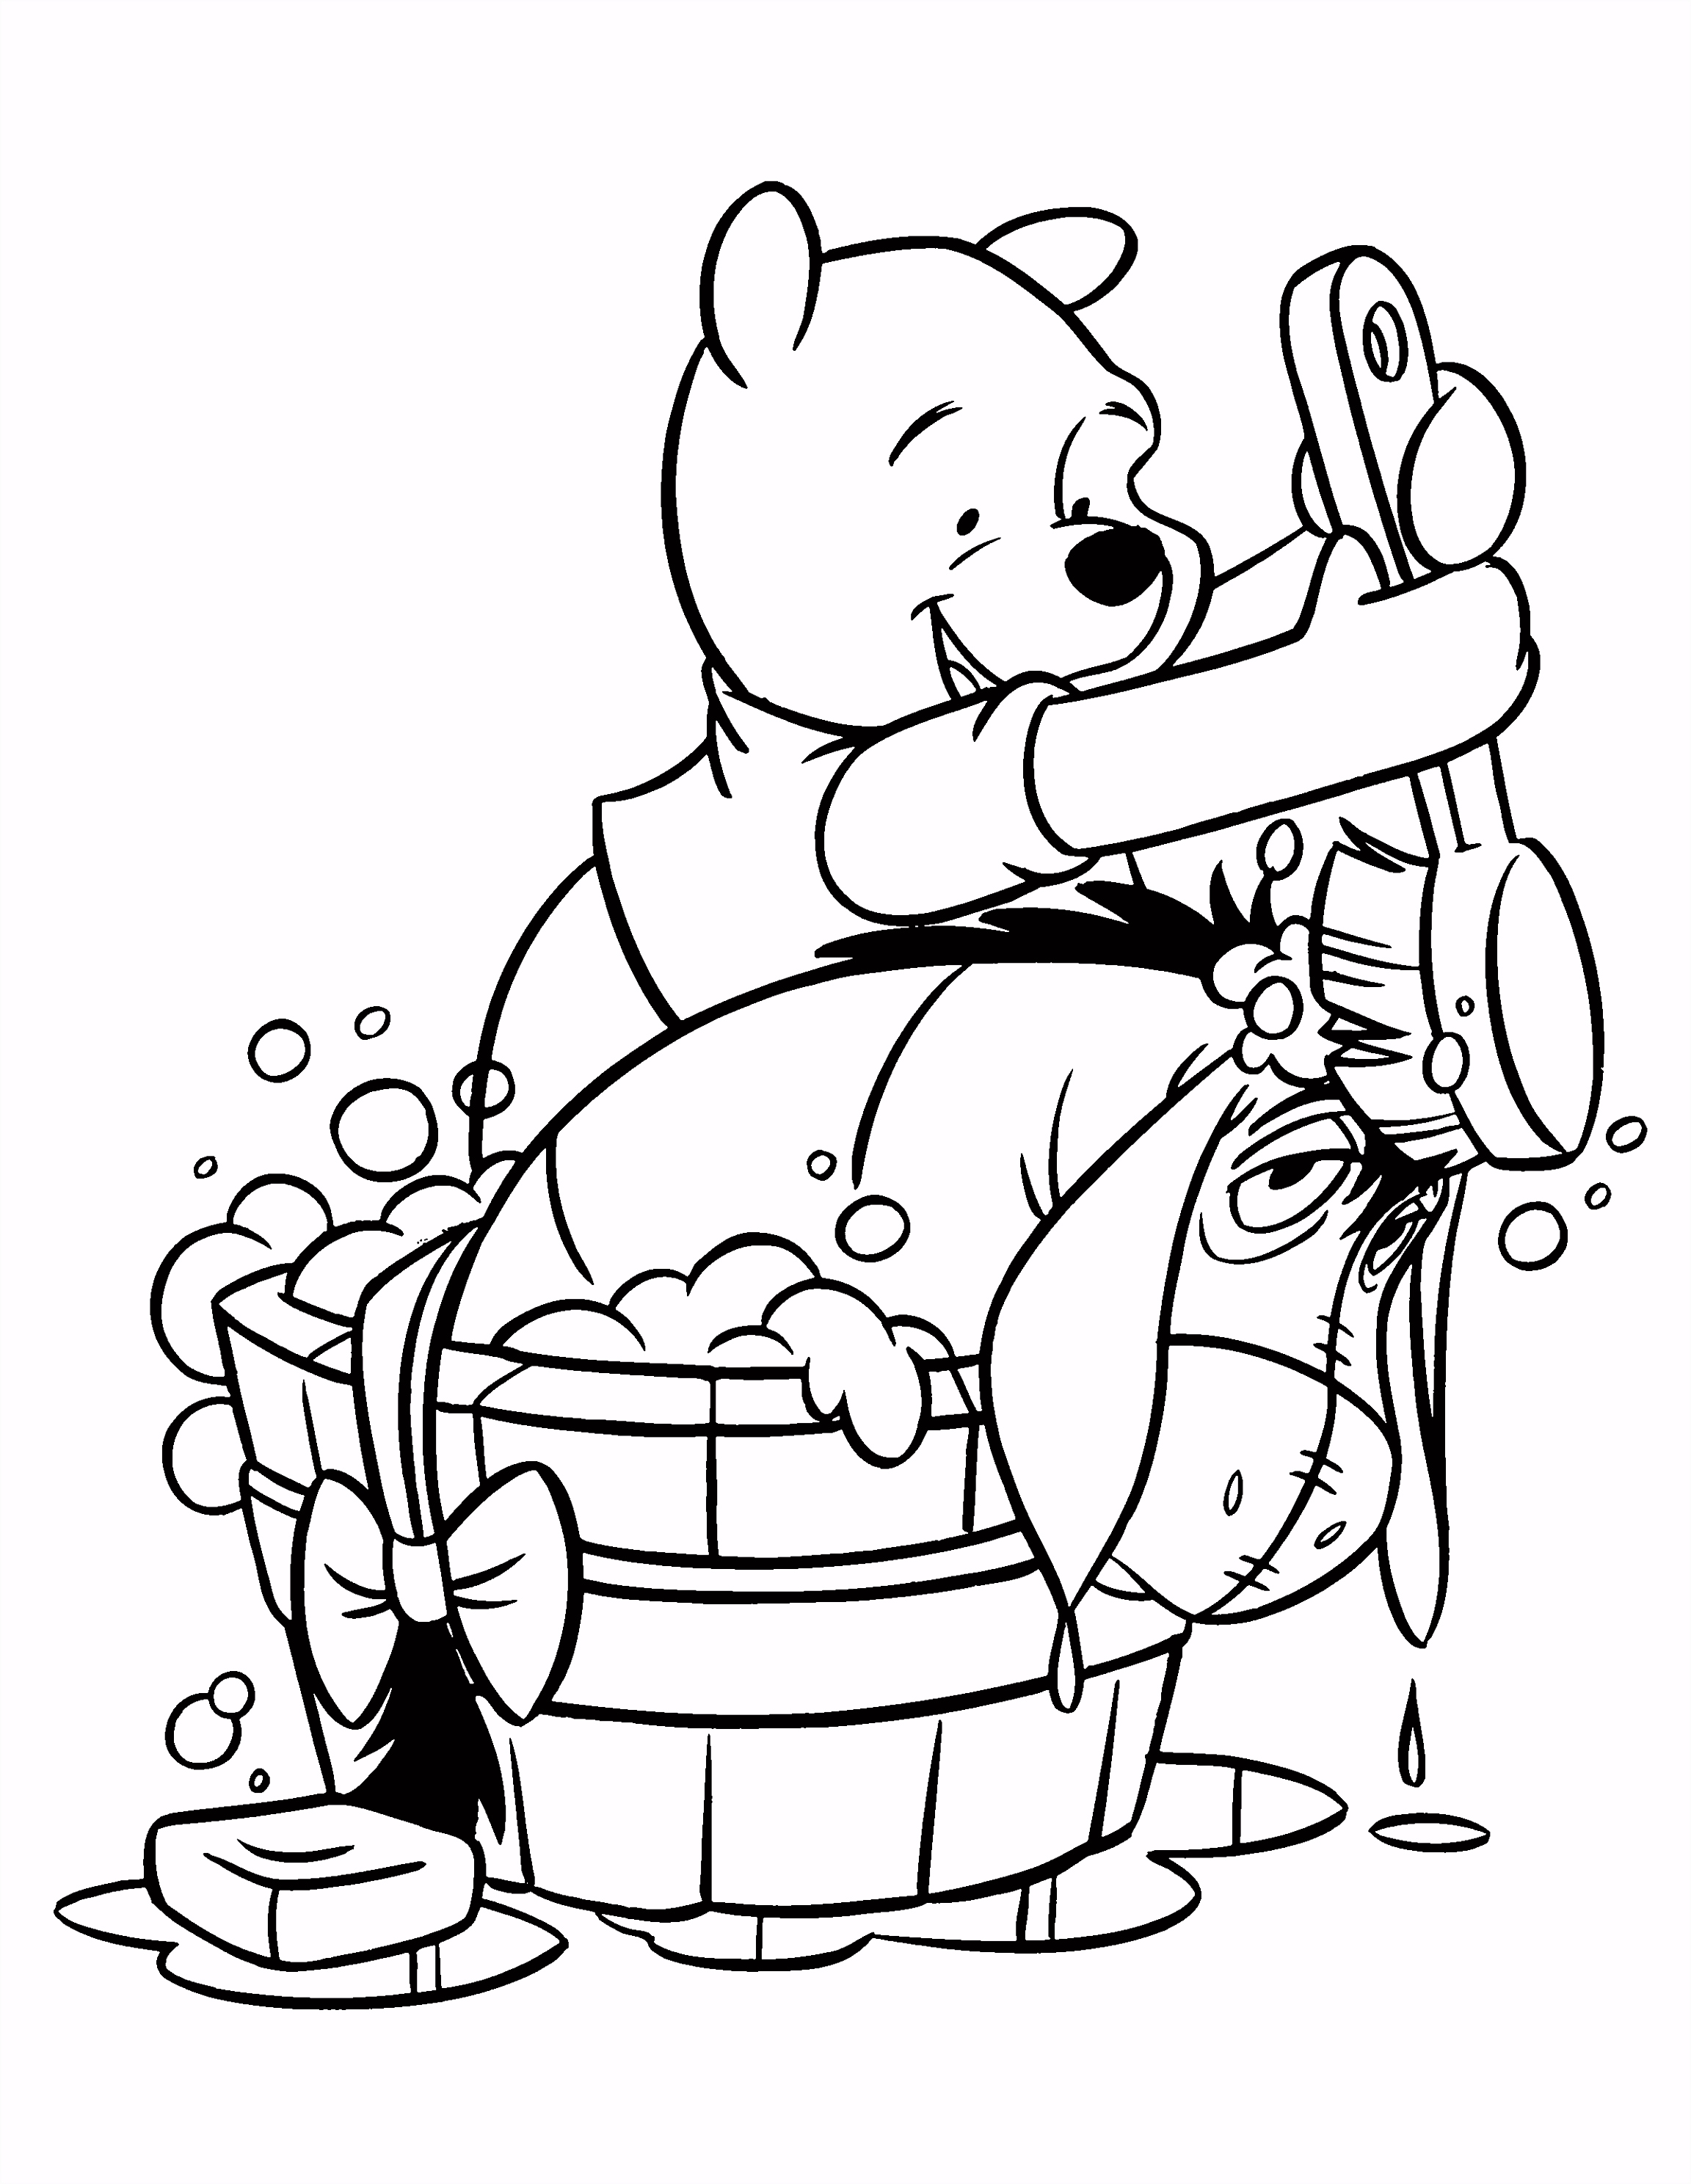 Eeyore free printable disney eeyore coloring pages prints and colors